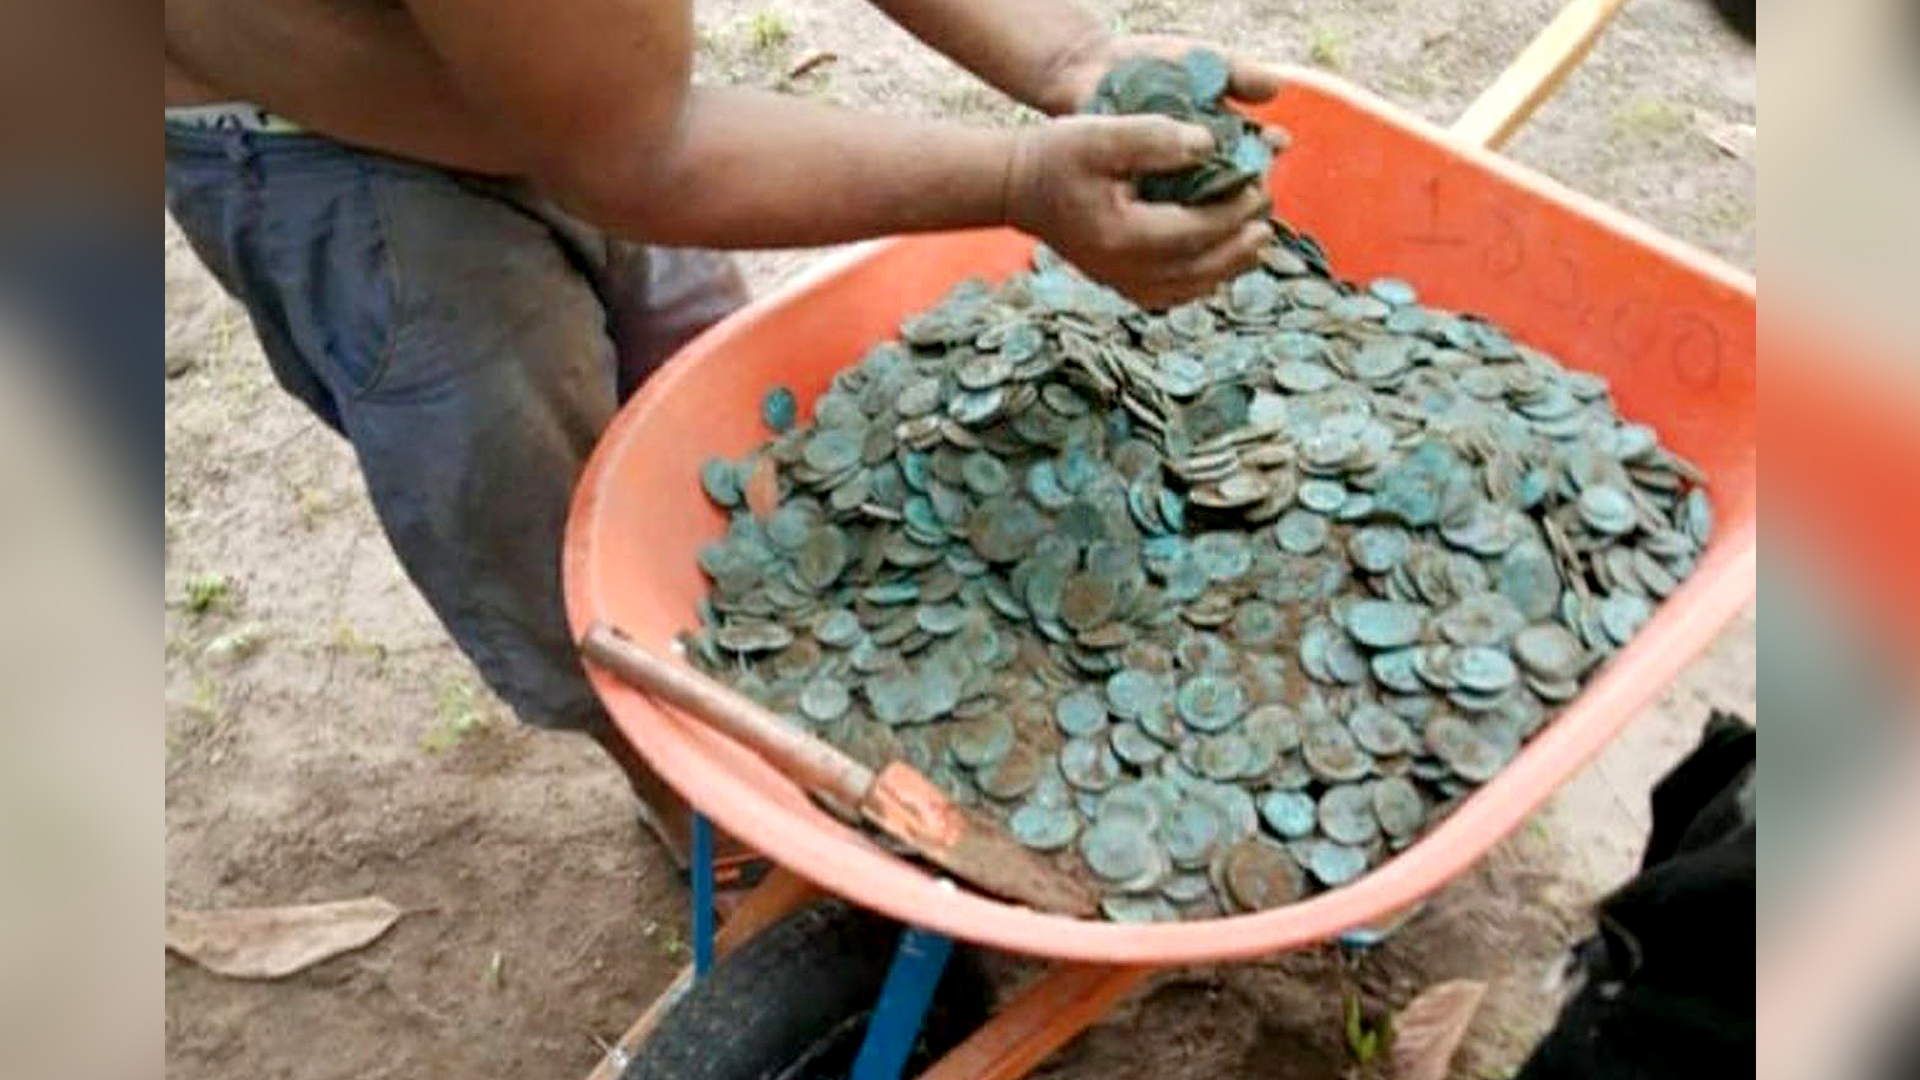 Old Age Pensioner: Senior Flees Thugs After Digging Up Treasure Trove of Ancient Coins